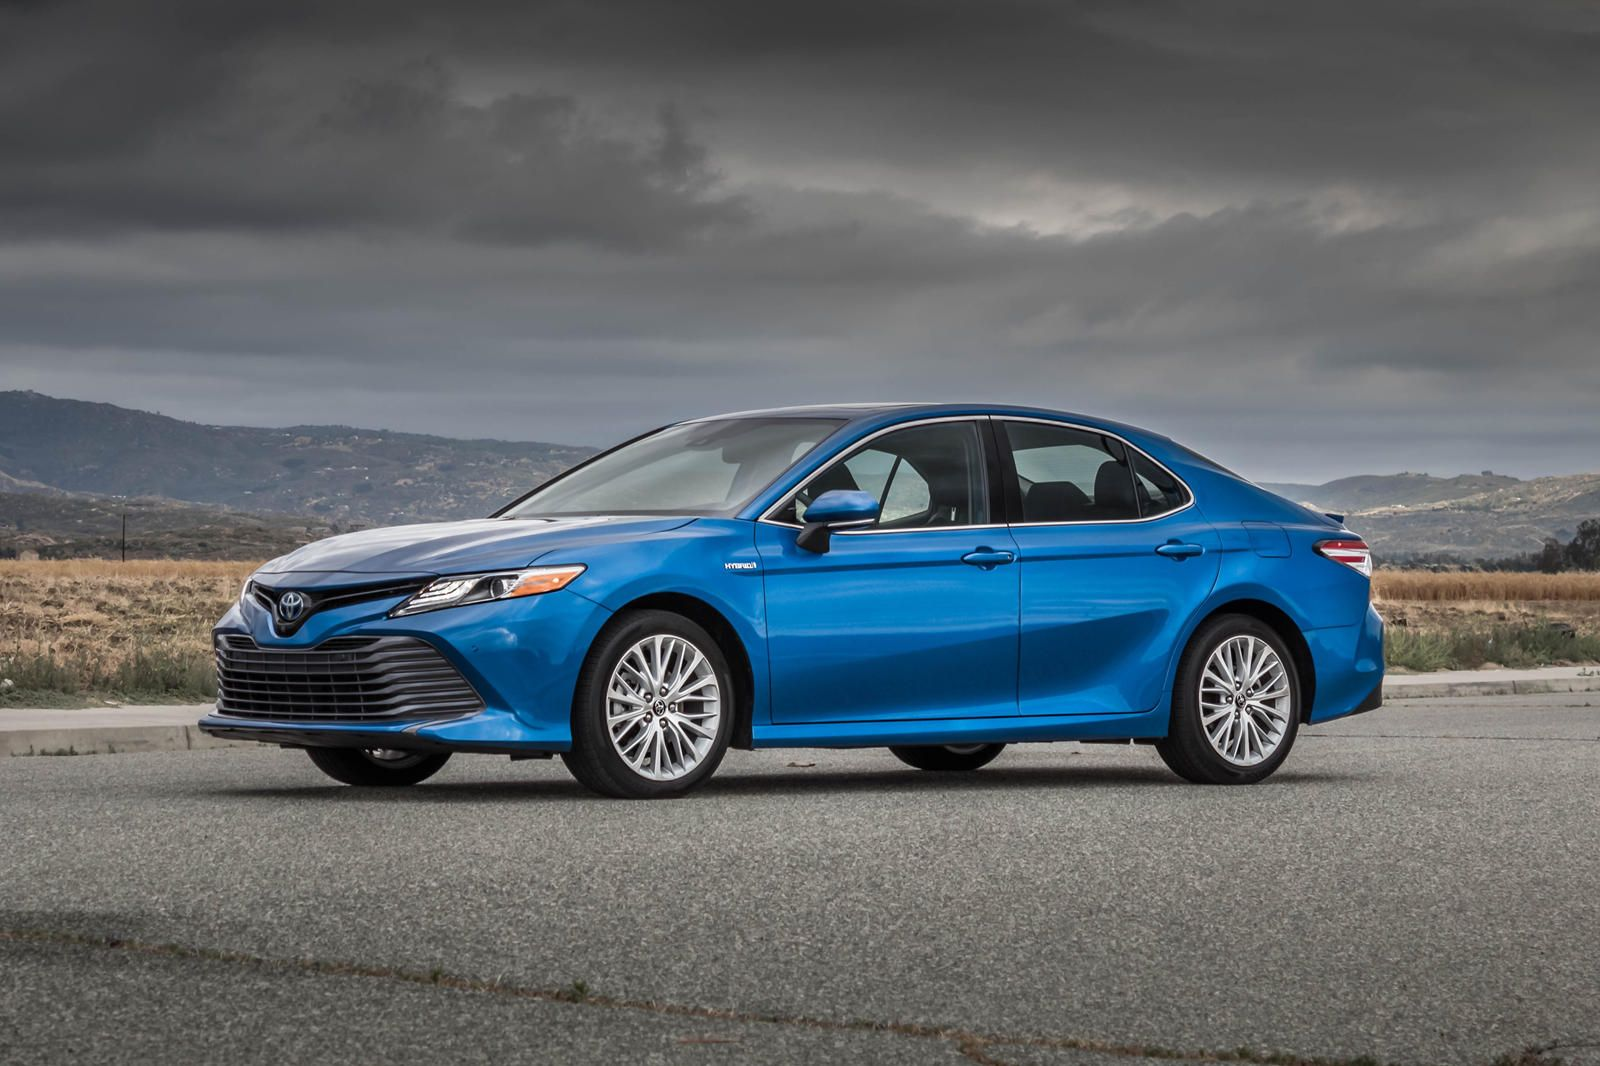 2020 Toyota Camry Hybrid Test Drive Review Being Green Has Never Been So Easy In 2020 Camry Toyota Camry Toyota